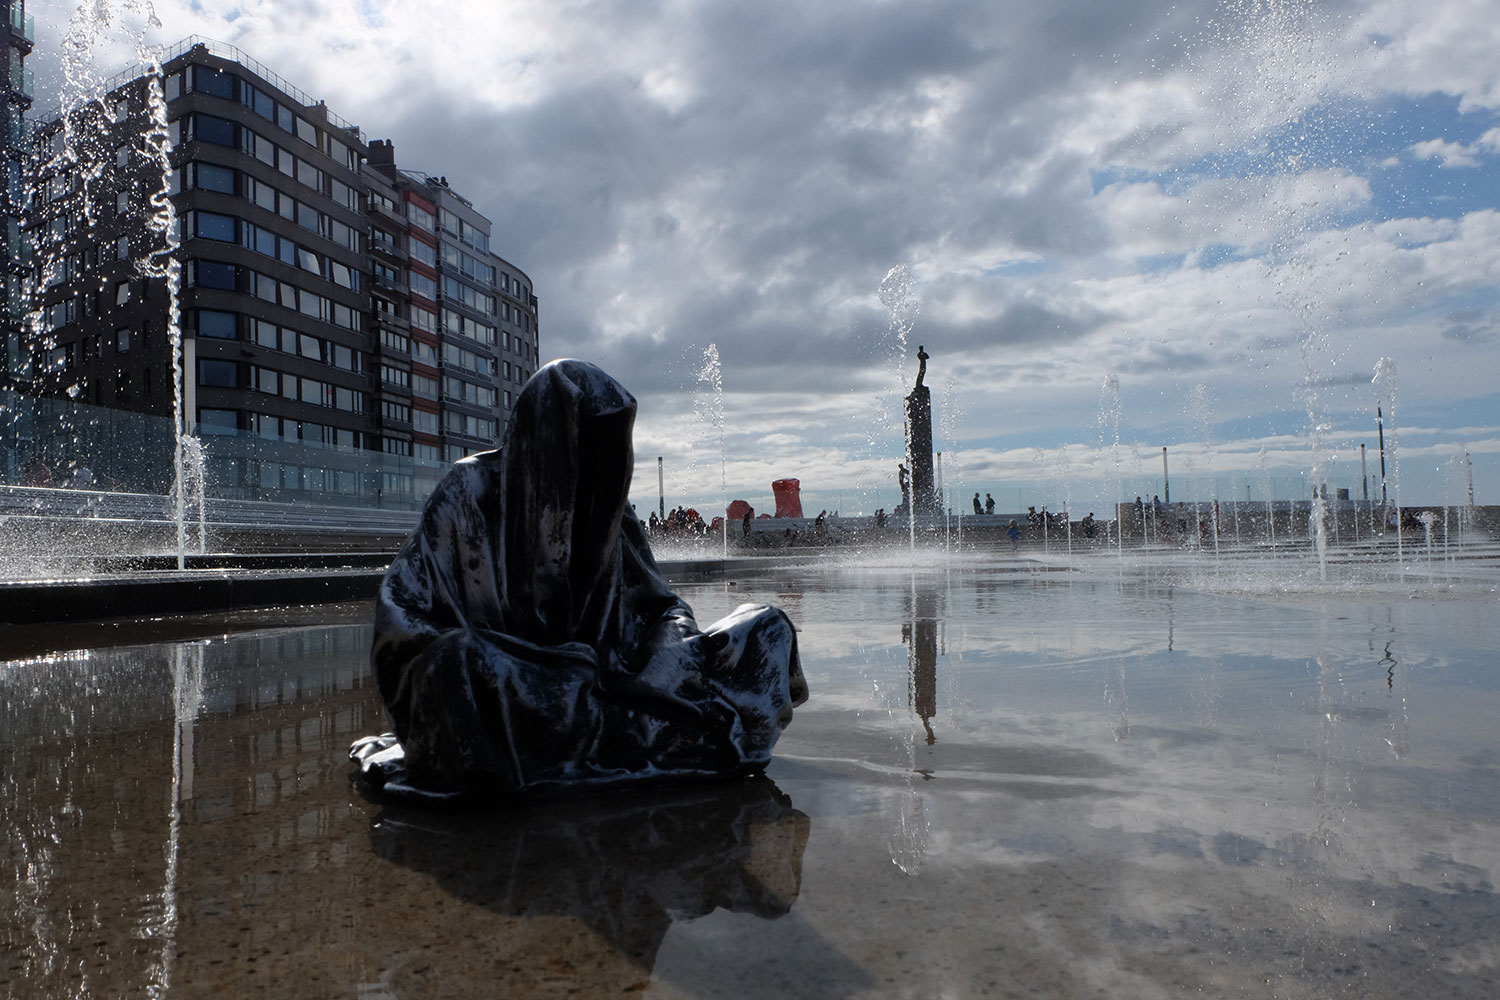 guardians-of-time-manfred-kili-kielnhofer-UK-London-contemporary-art-arts-design-sculpture-5317